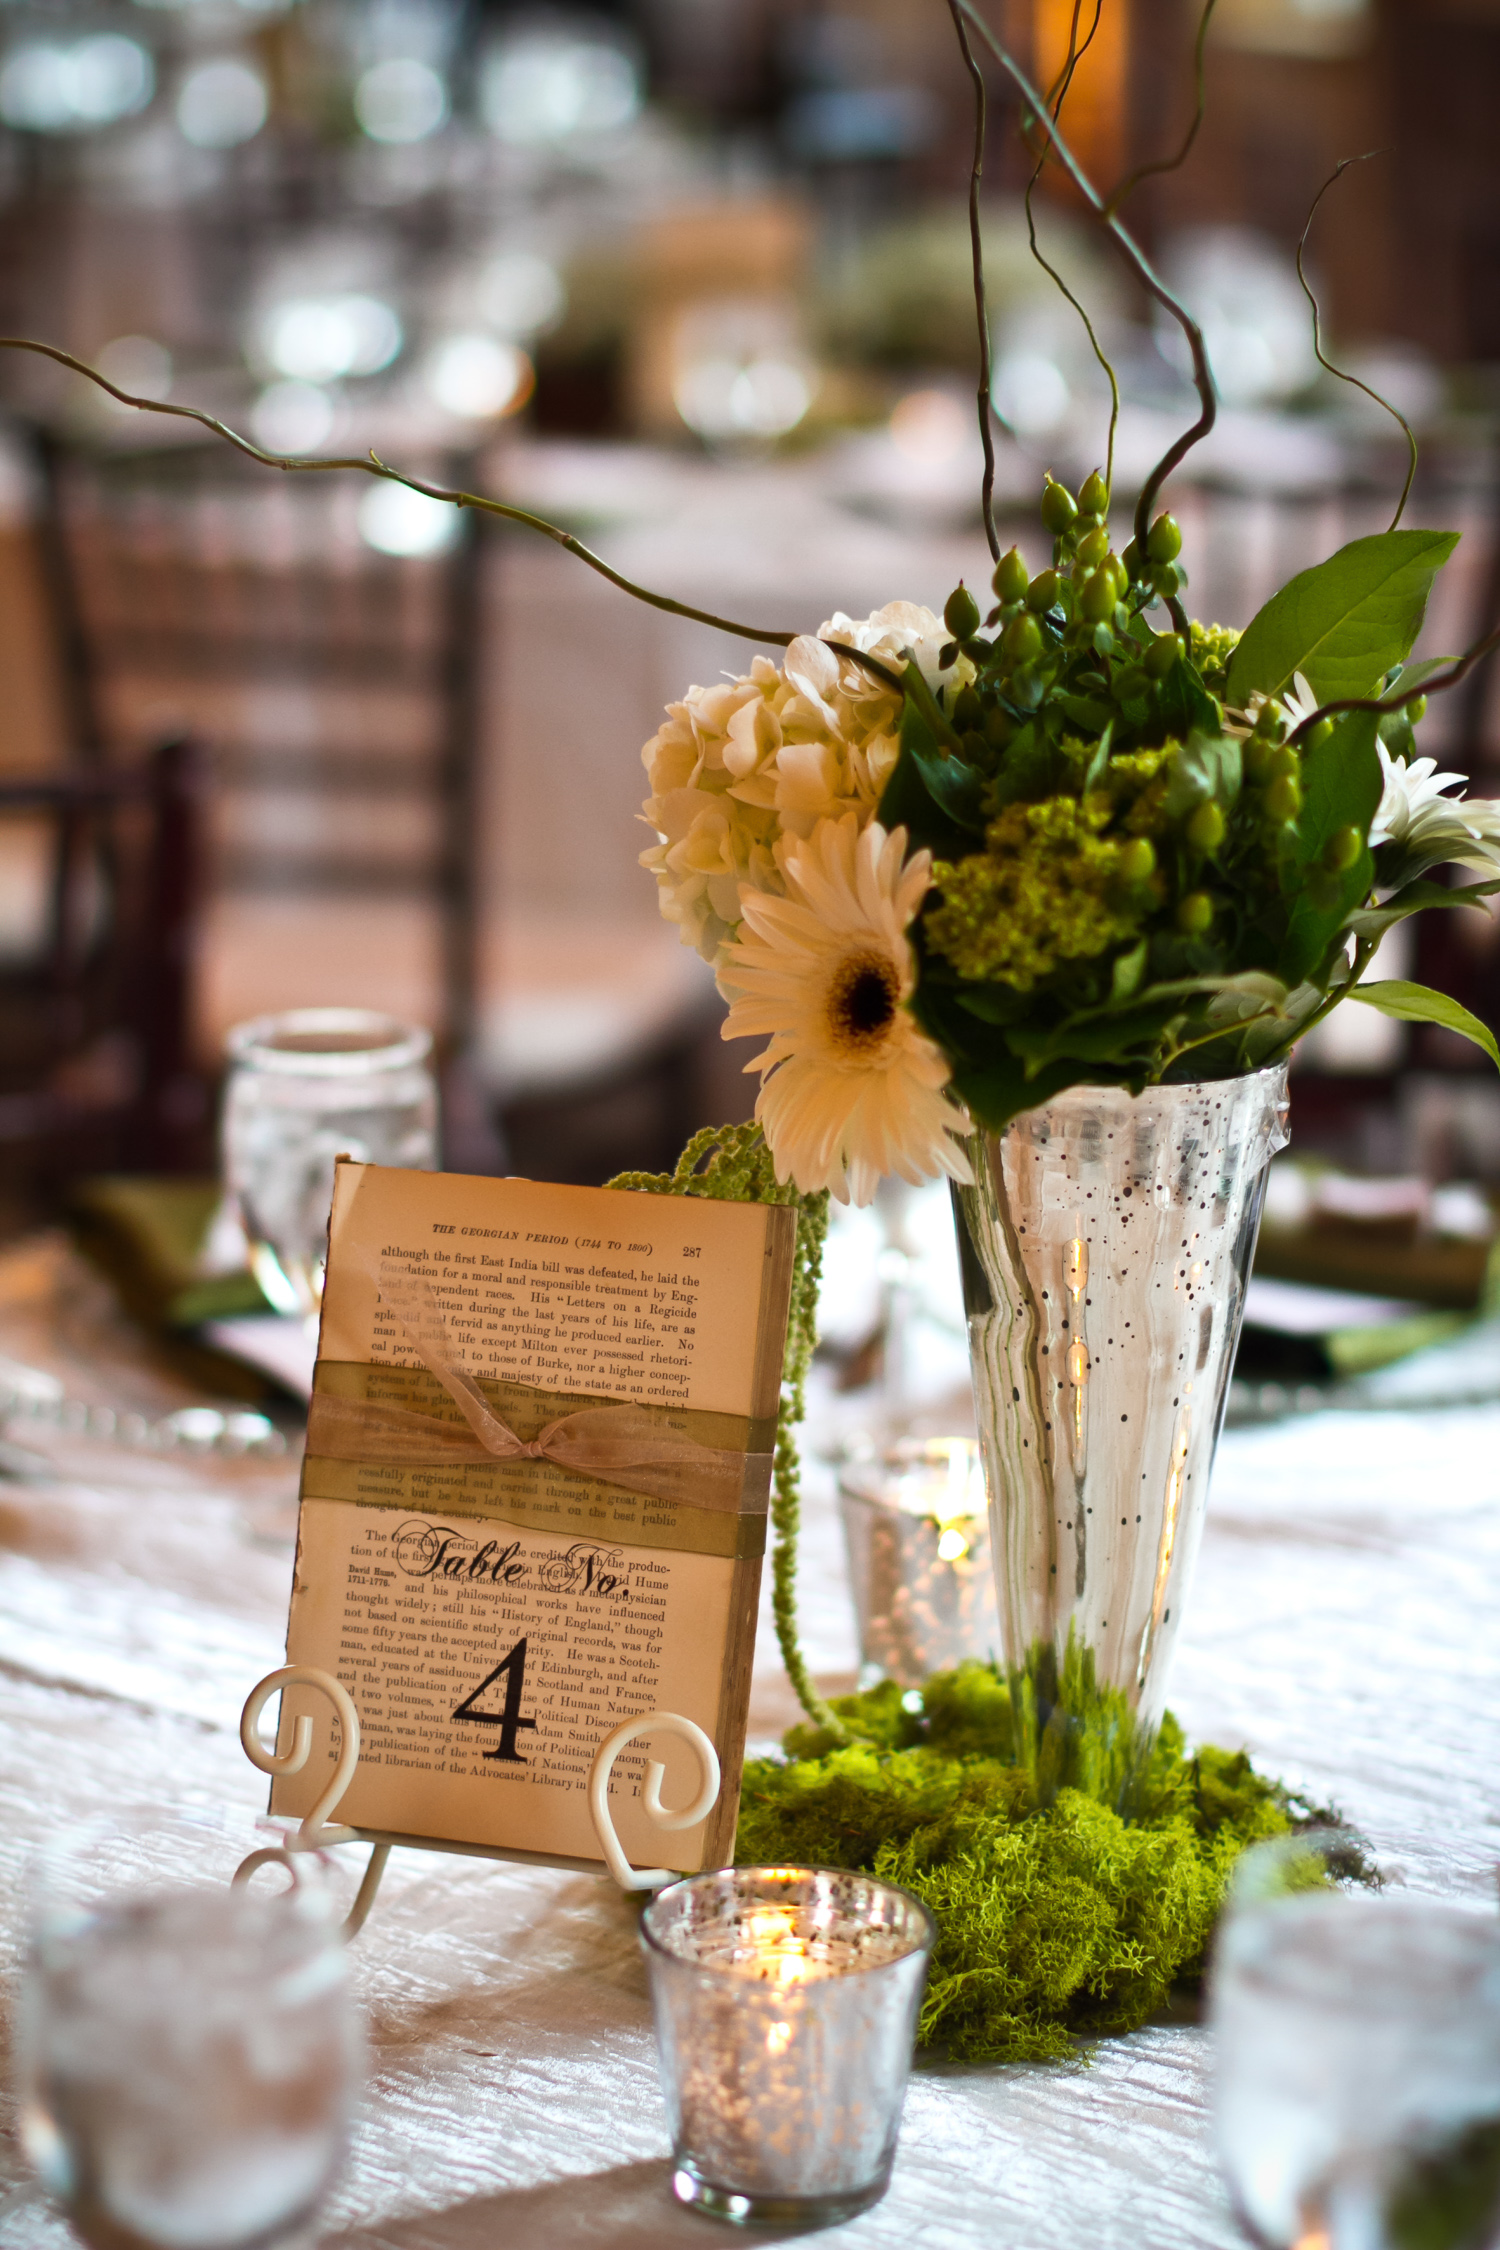 Crooked_Willow_Farms_Wedding_054.JPG